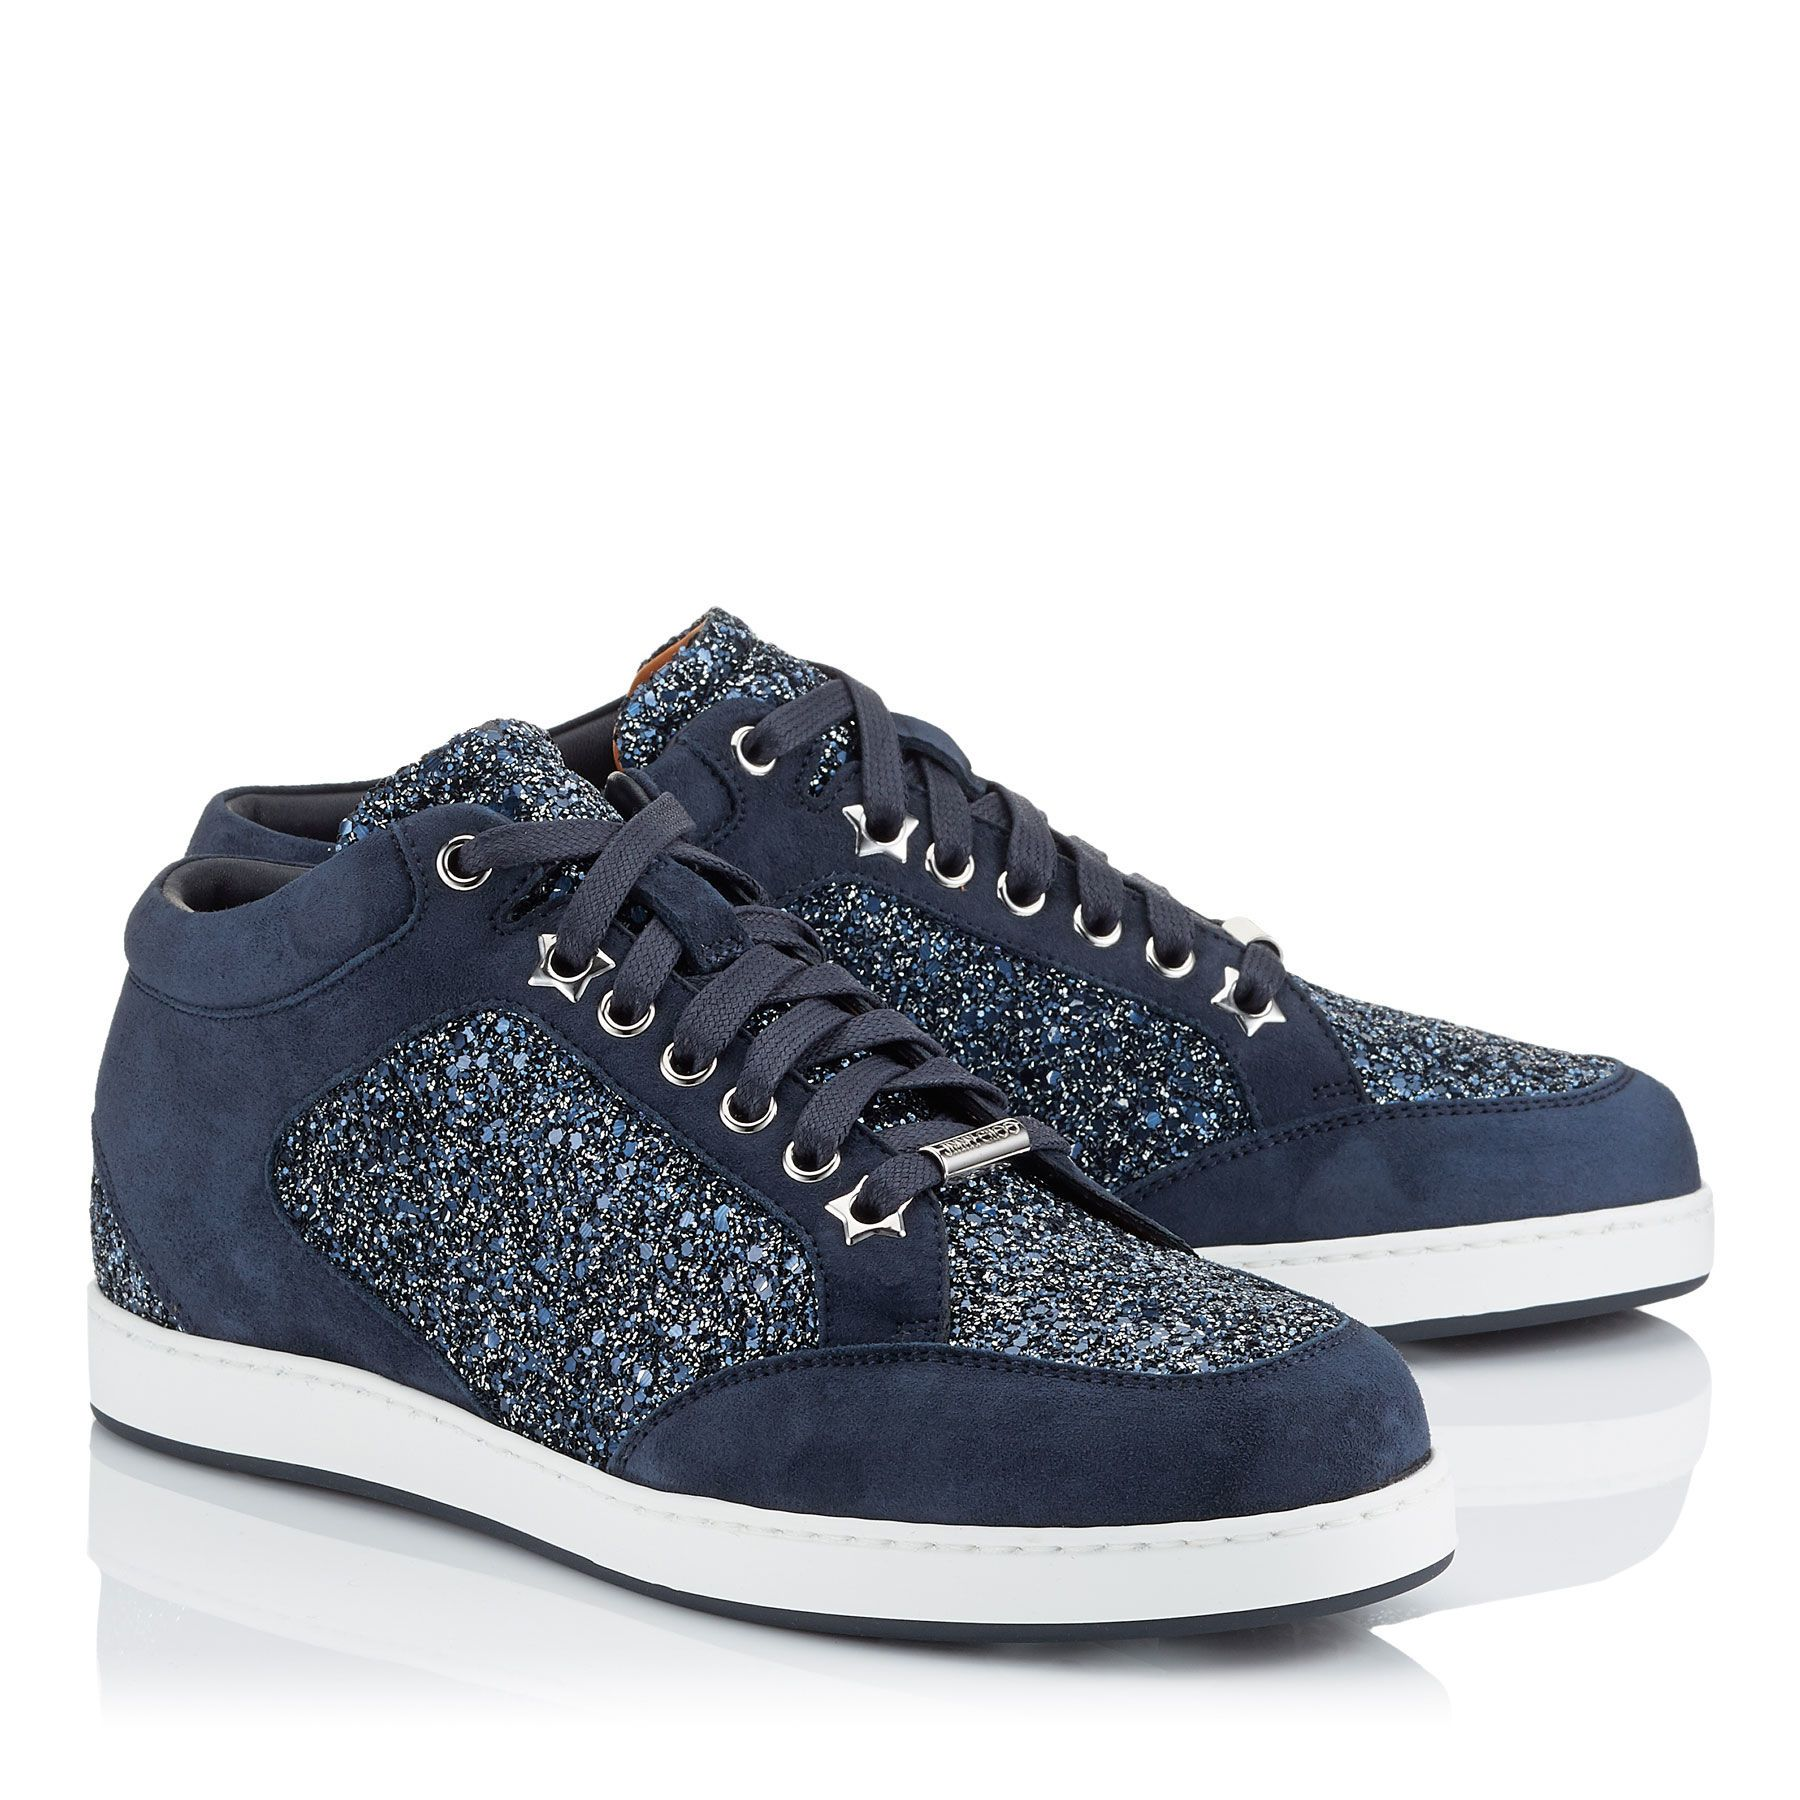 1c14f6c8b52 Jimmy Choo, Miami. Navy Crackly Glitter Fabric Sneakers | Jimmy choo ...